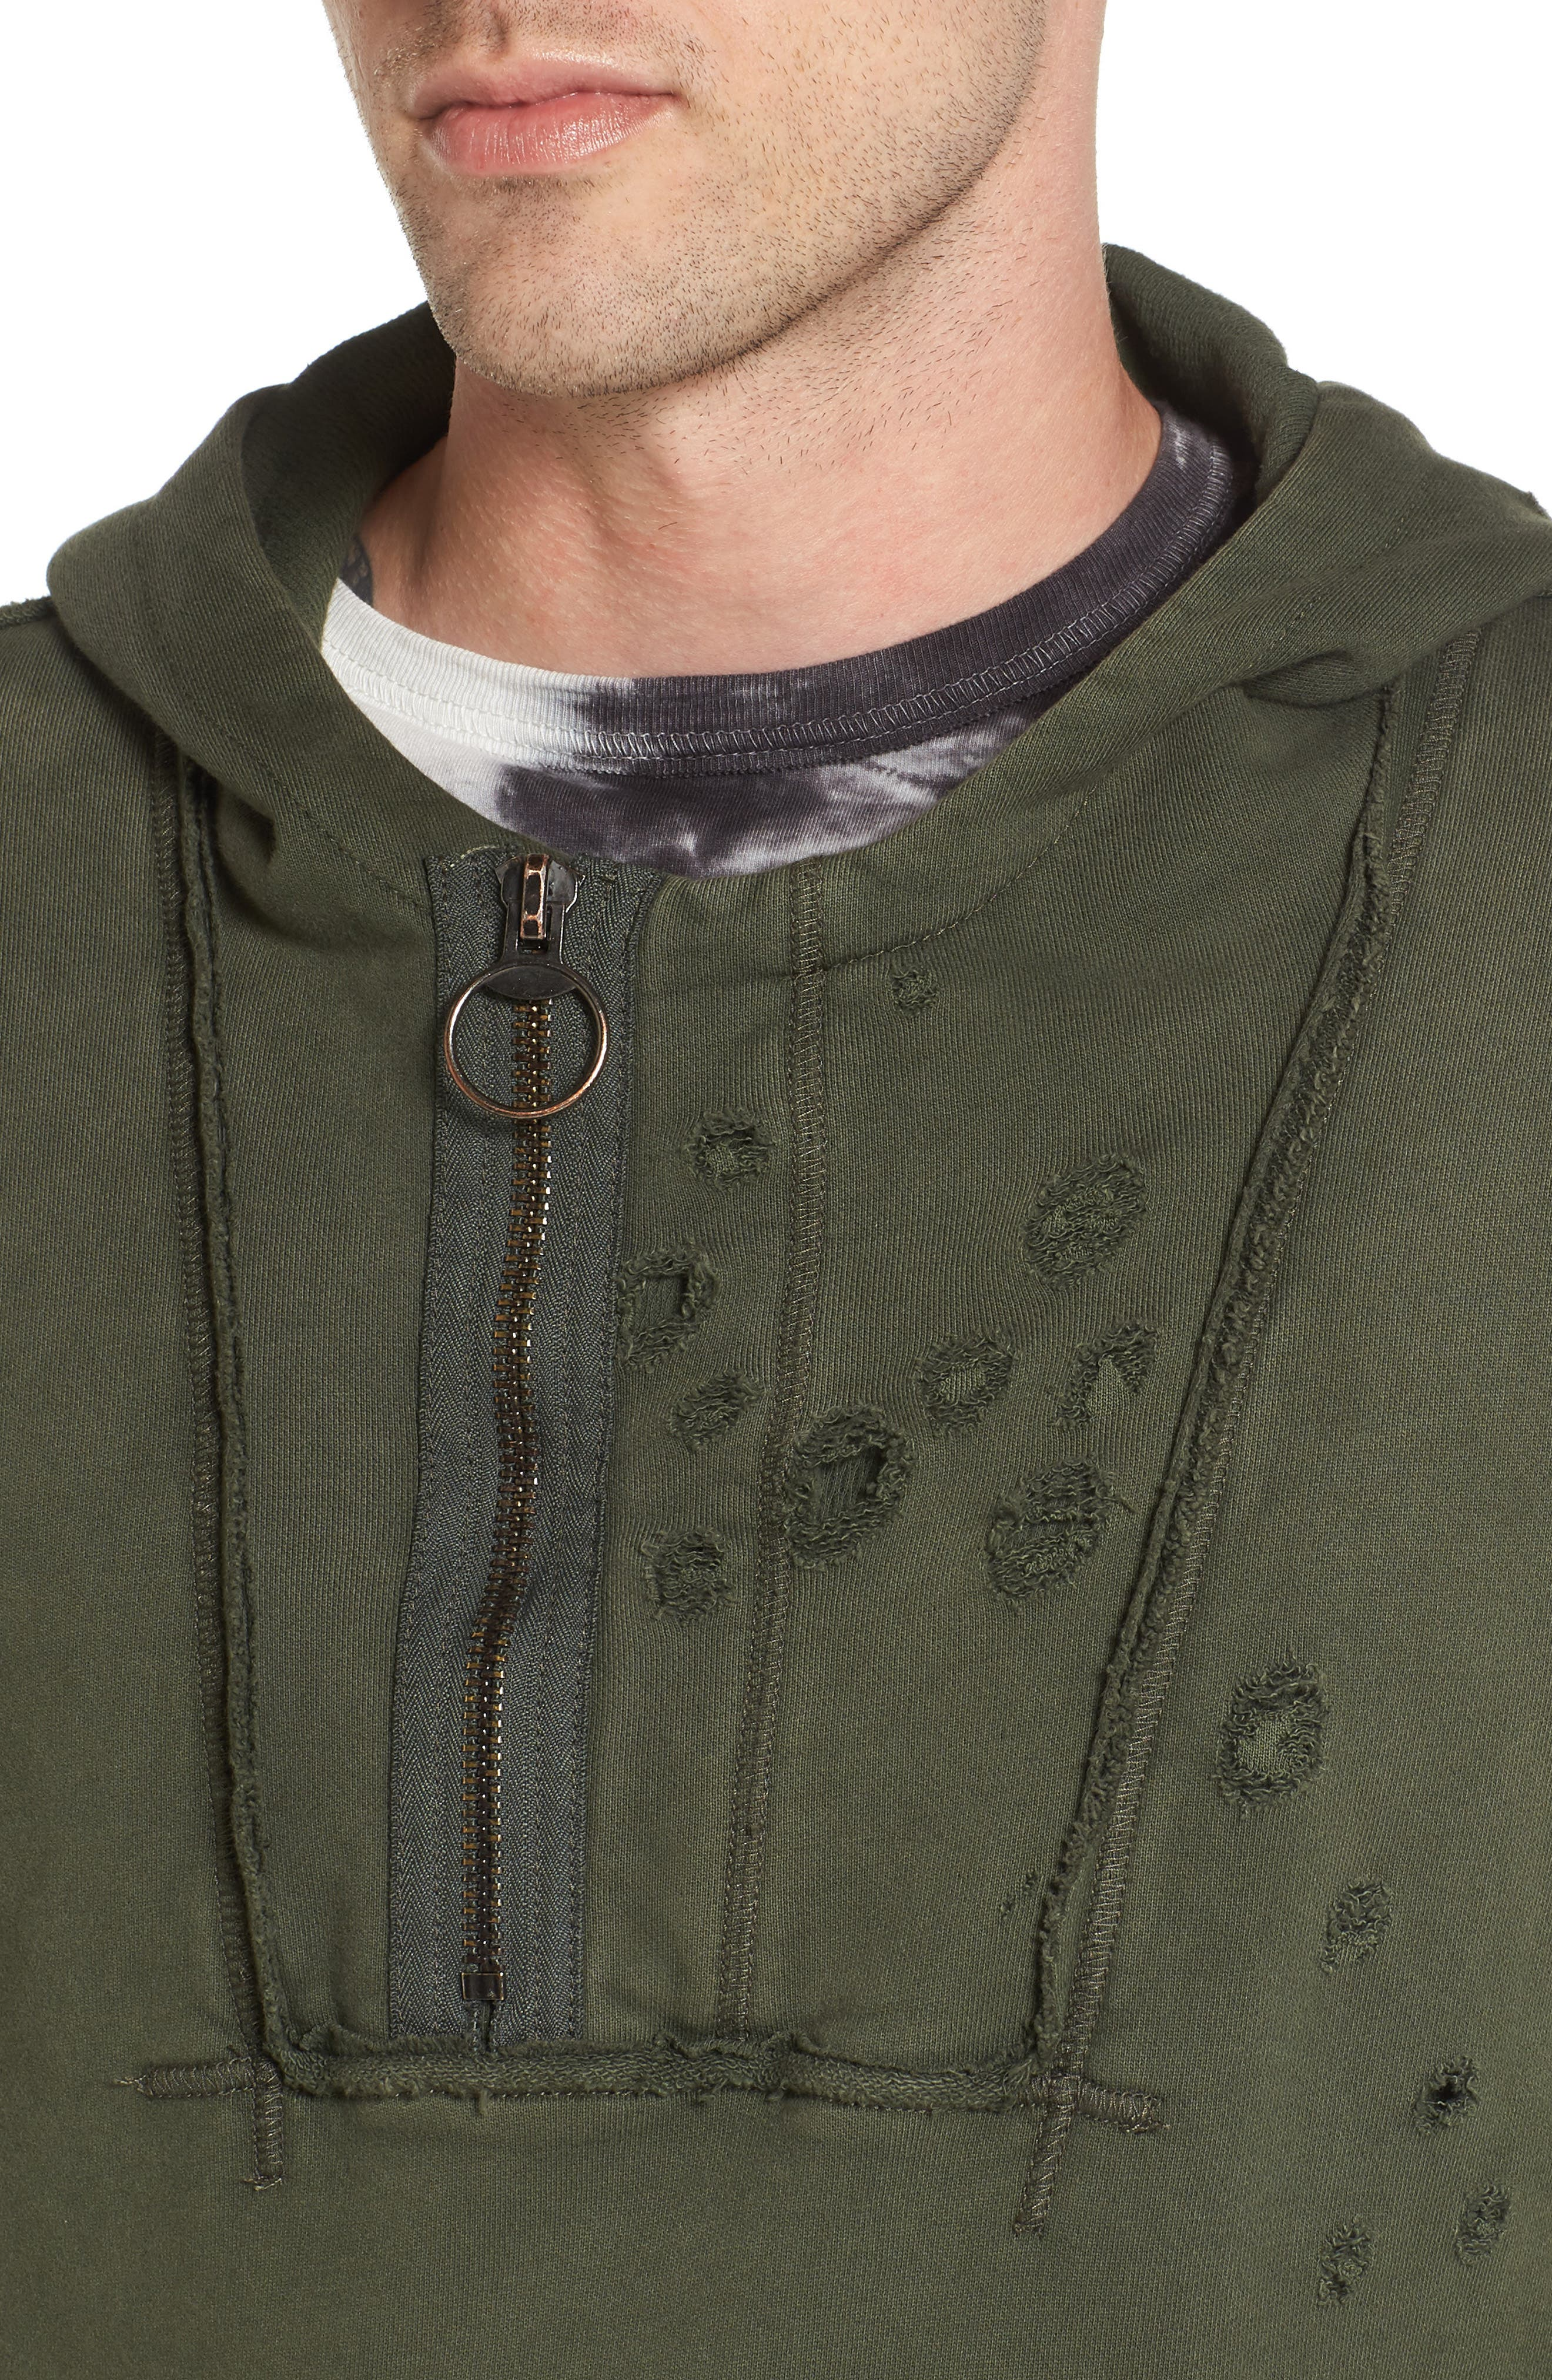 Distressed Pullover Hoodie,                             Alternate thumbnail 4, color,                             Militant Green